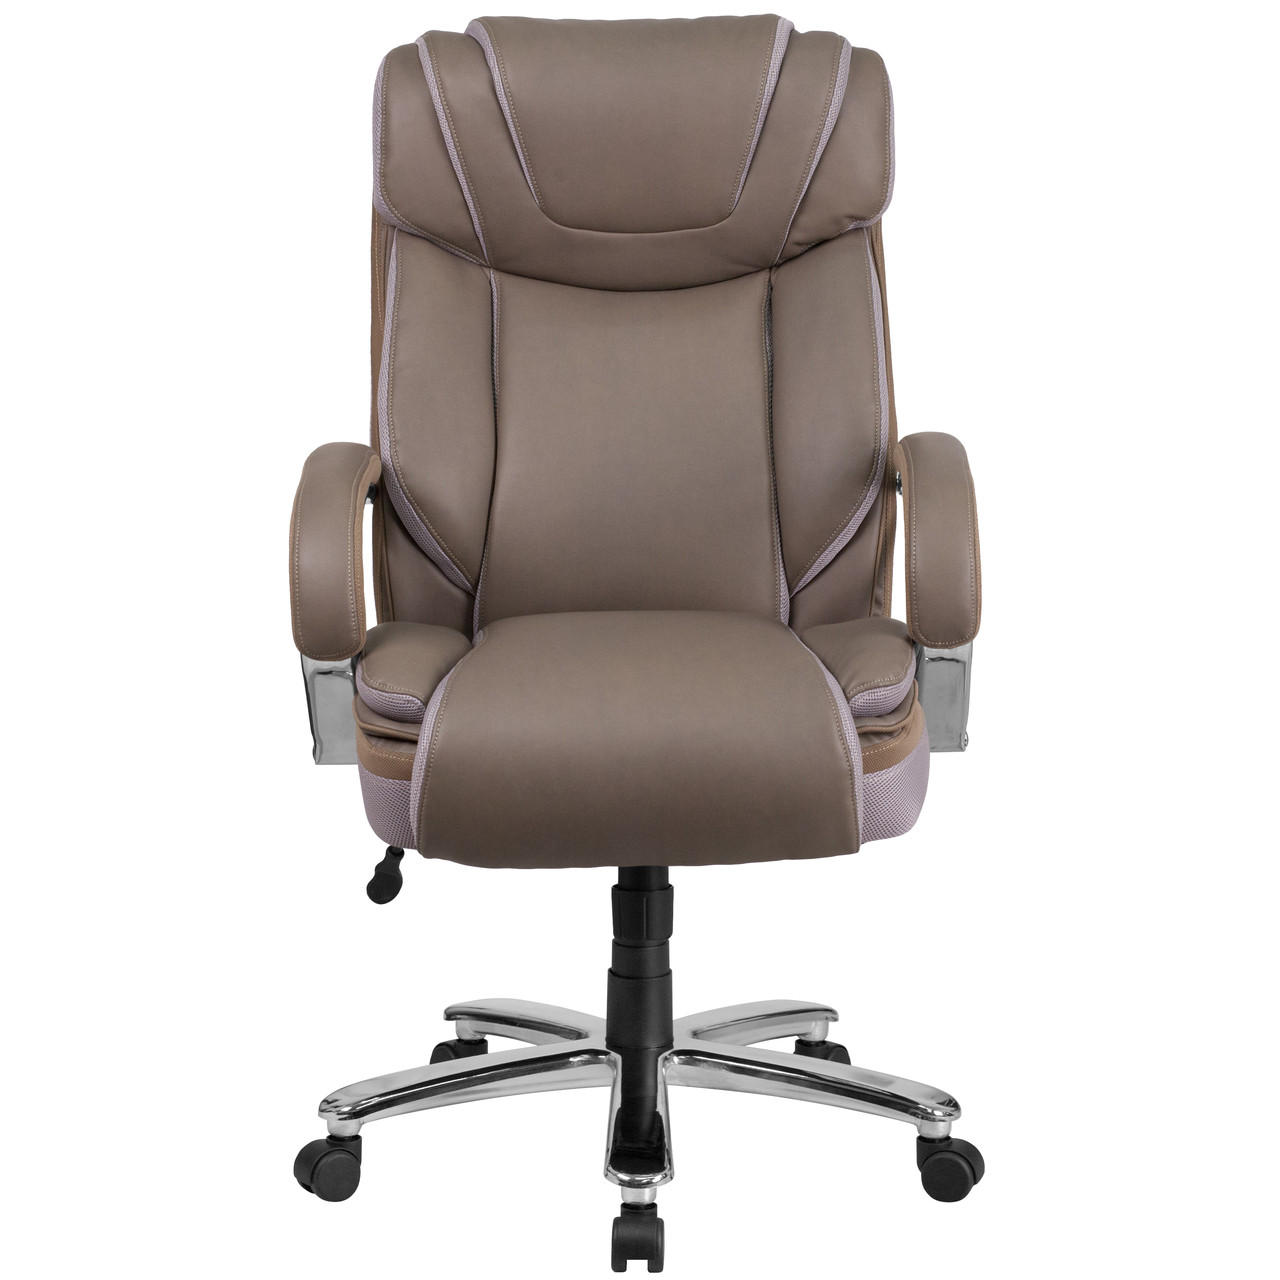 Flash Furniture Hercules Series Big Tall 500 Lb Rated Taupe Leather Executive Swivel Ergonomic Office Chair With Extra Wide Seat